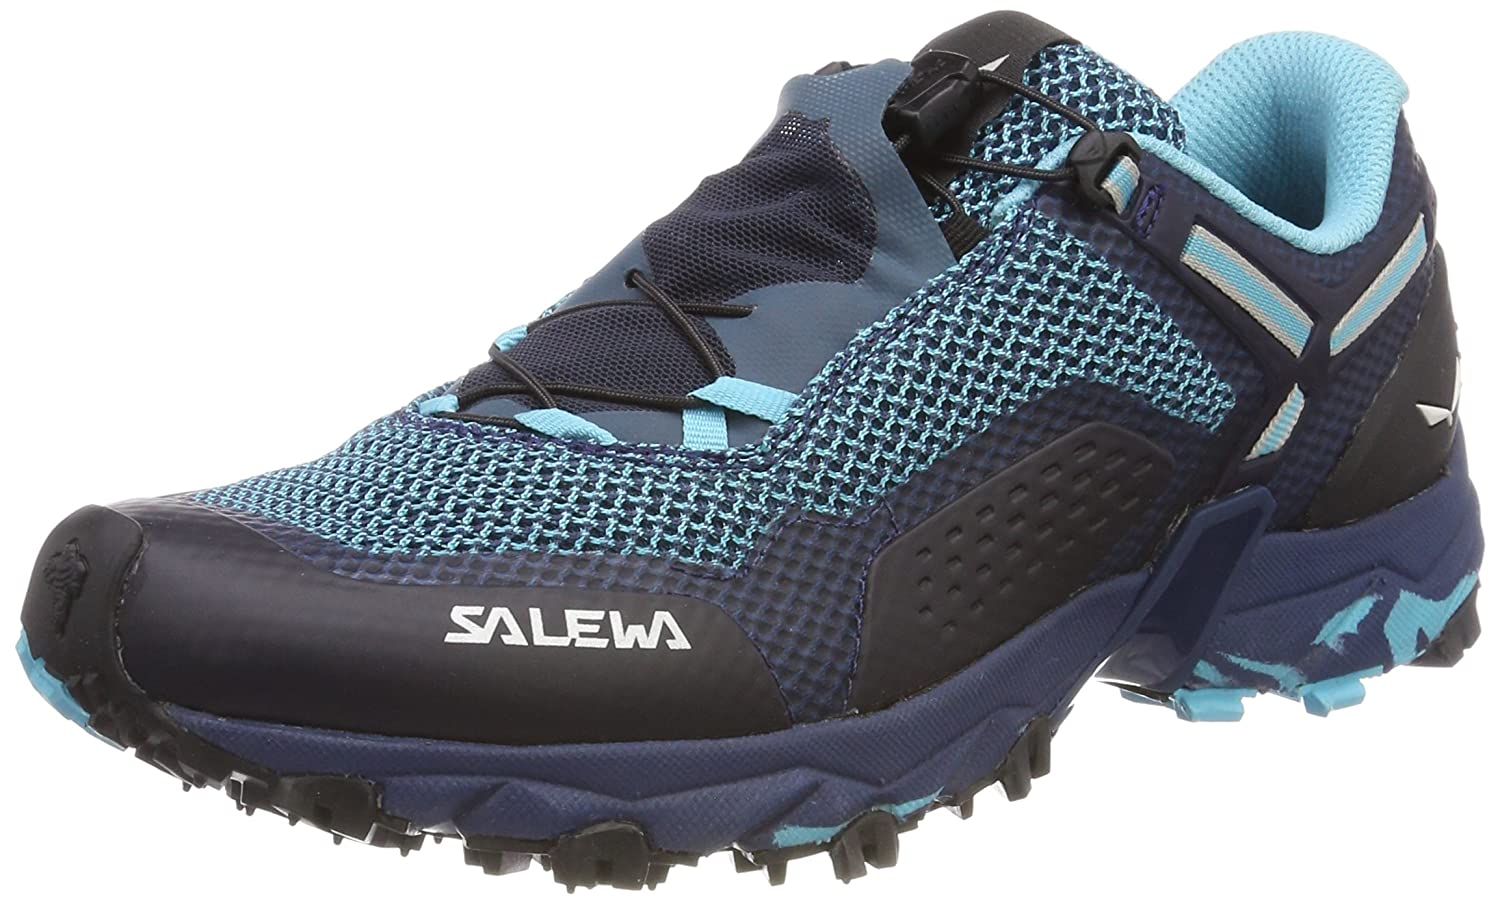 Salewa Women's Ultra Train 2 B072N999LB 9 B(M) US|Capri/Poseidon